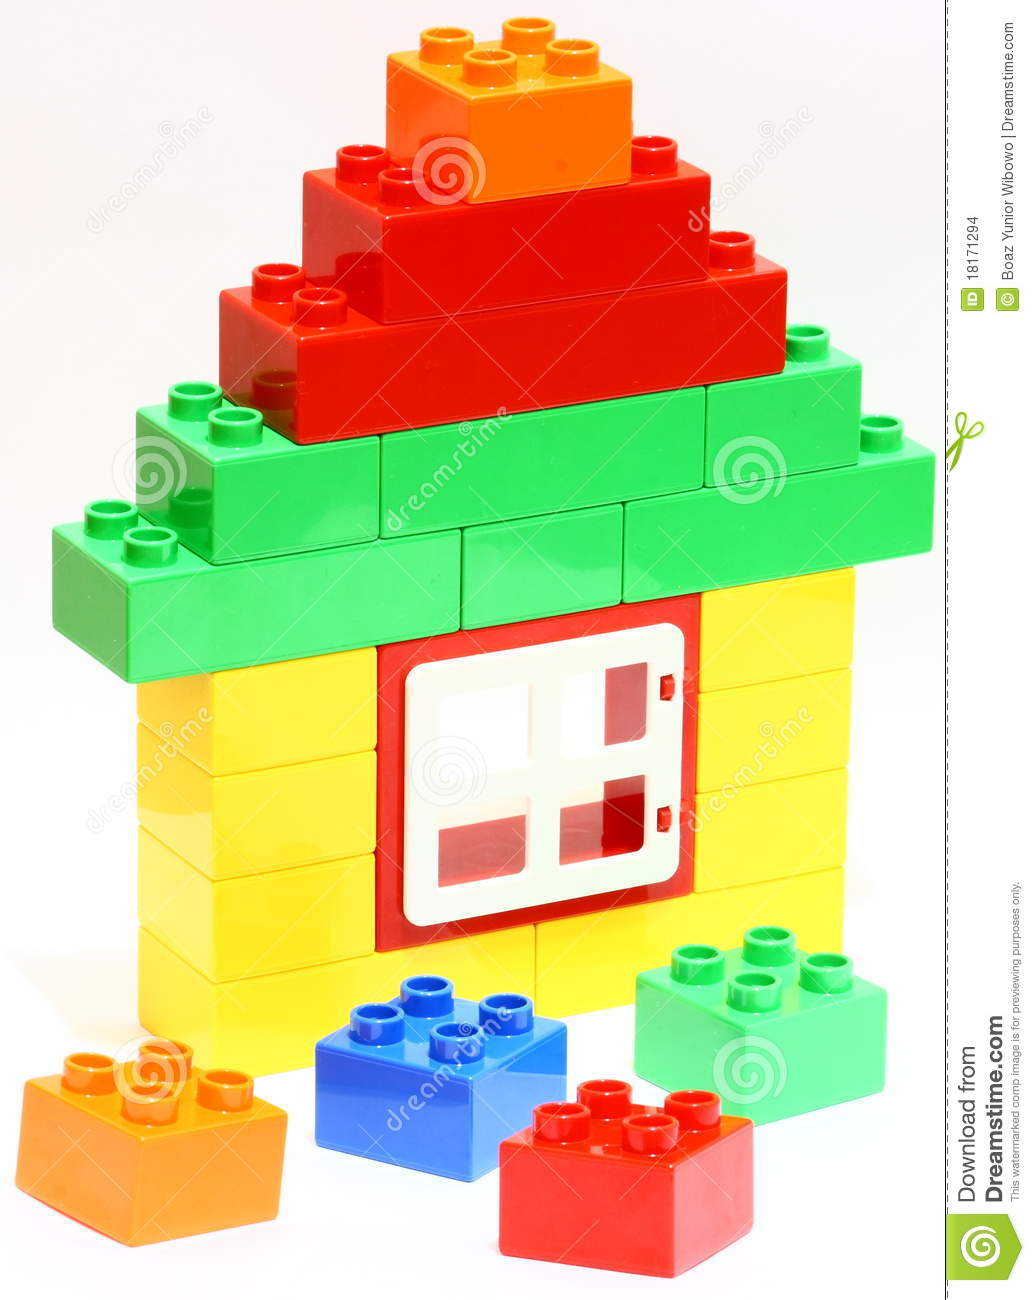 House Building Blocks Toy